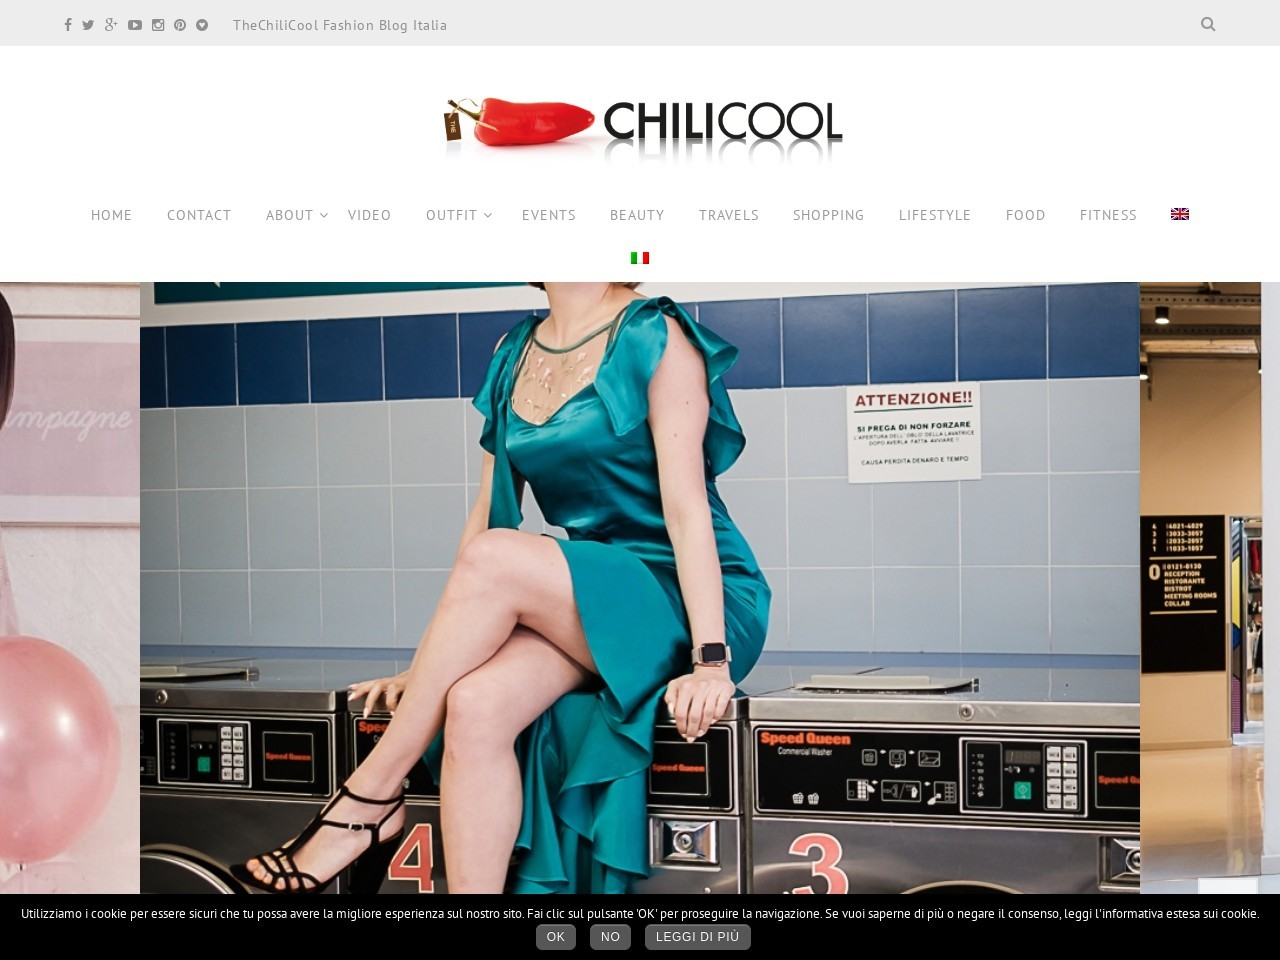 thechilicool